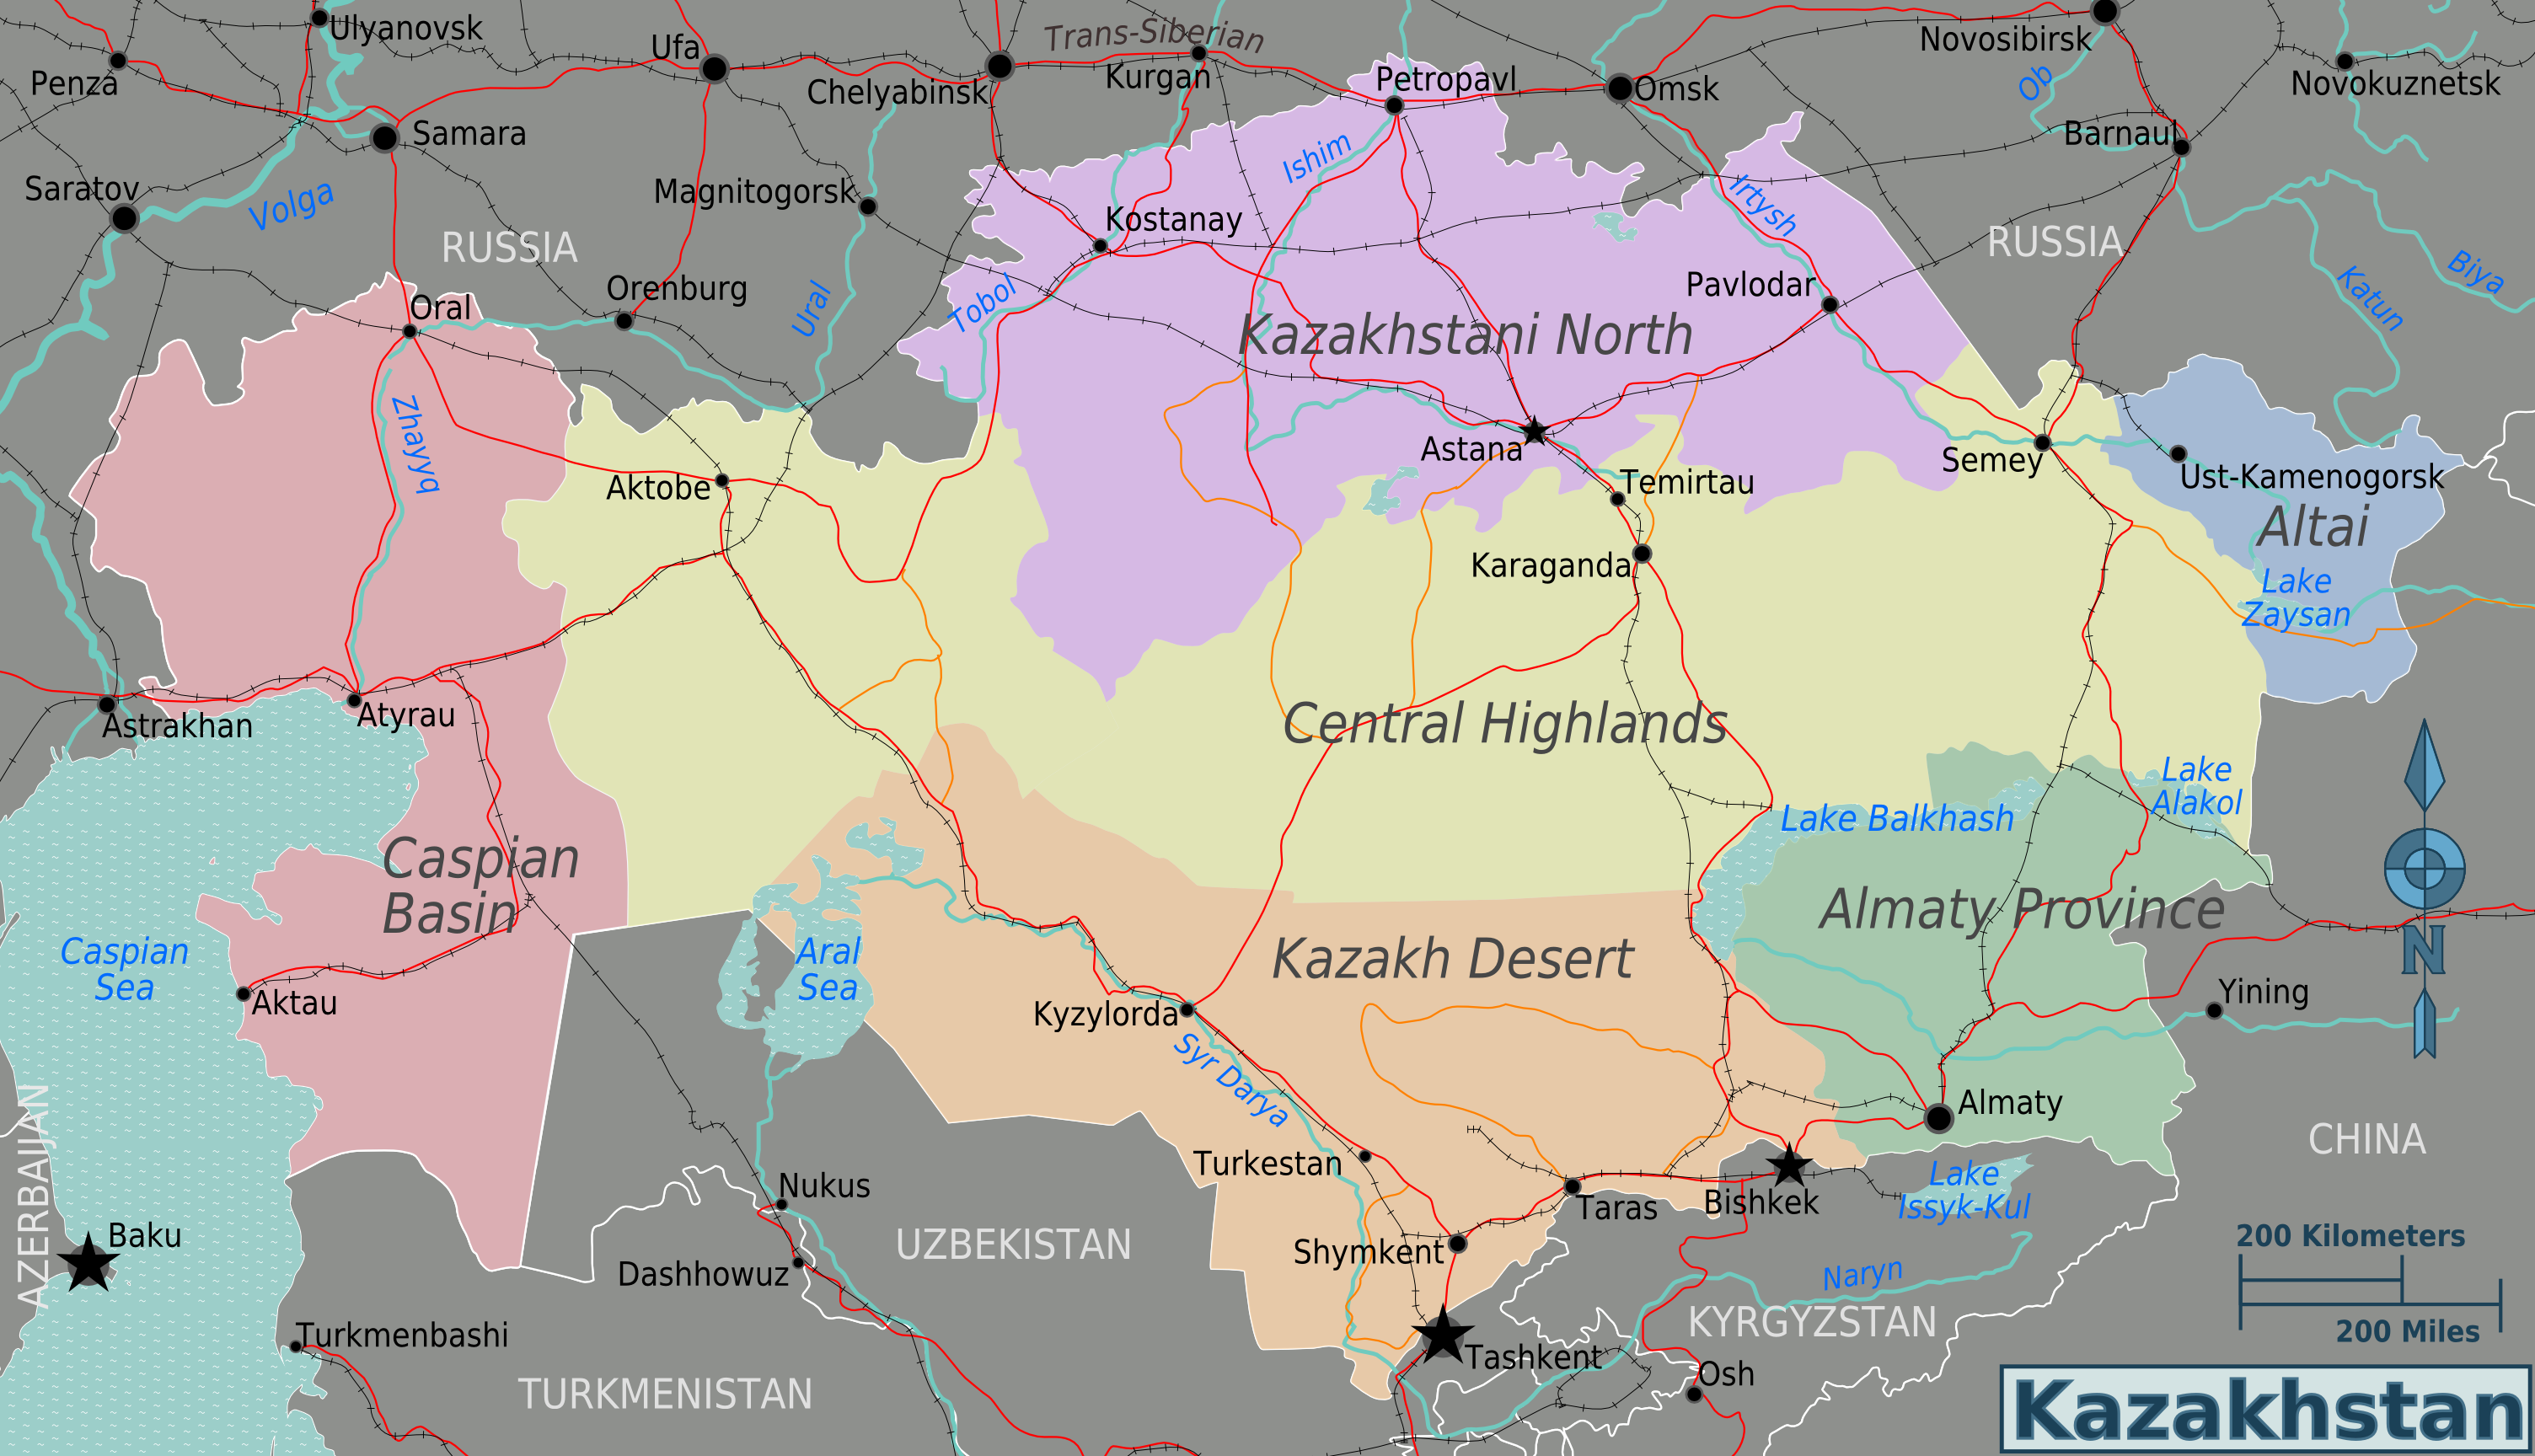 File:Kazakhstan_regions_map.png Source: ...